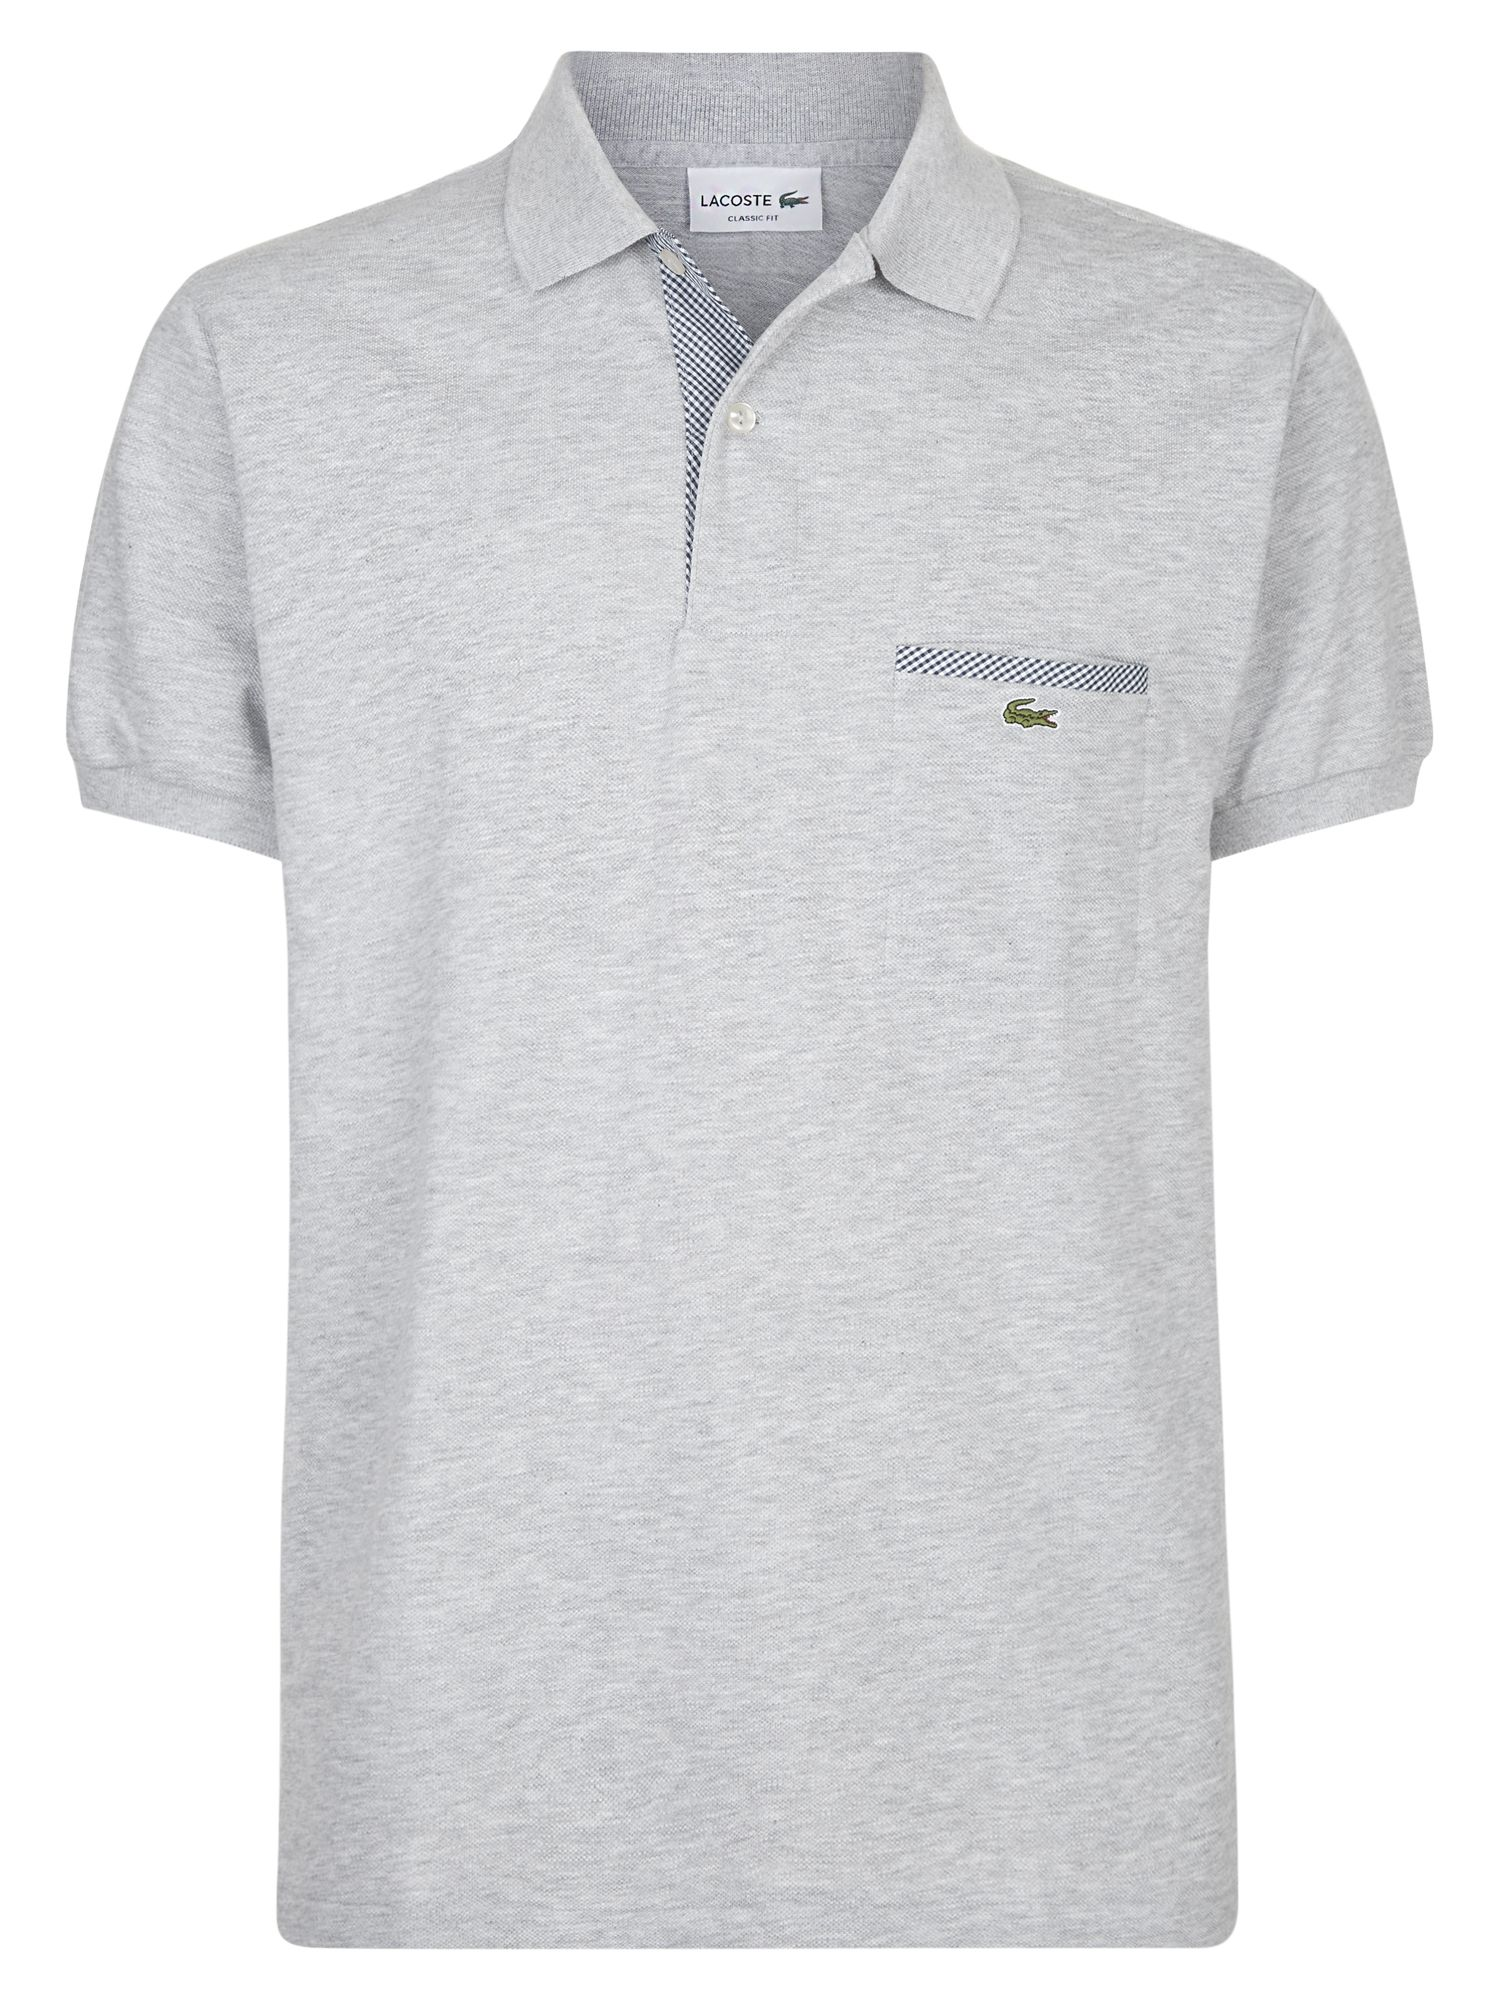 Men's Lacoste Contrast Pocket Polo Shirt, Silver Chine